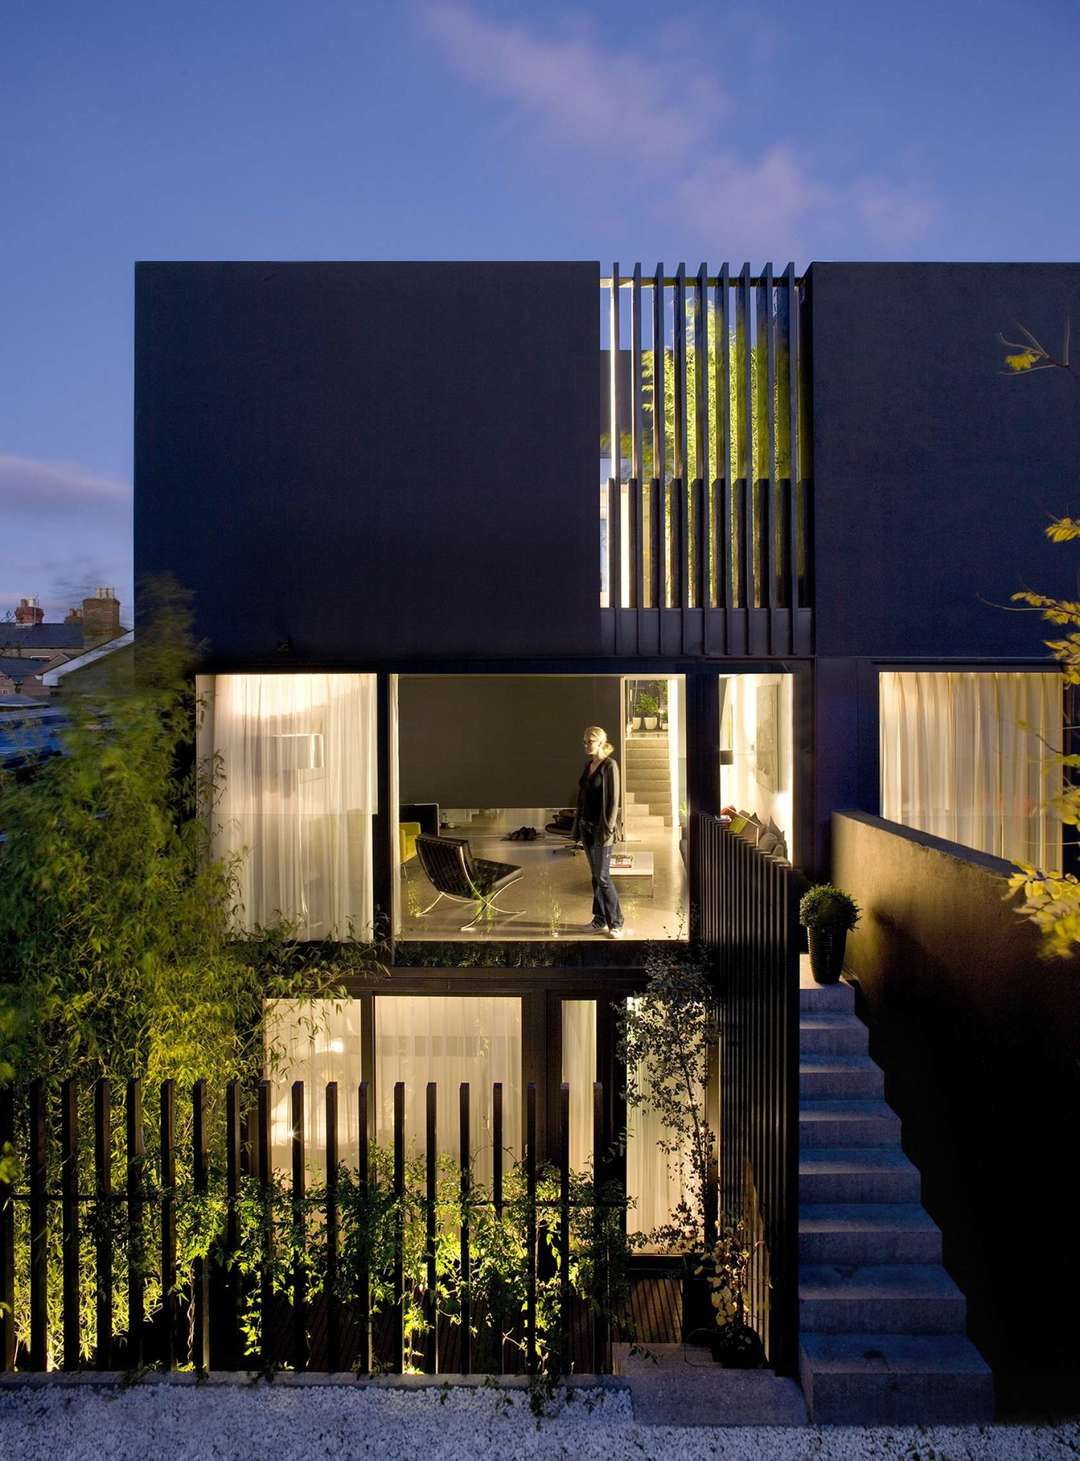 Charming Image 12 Of 26 From Gallery Of 3 Mews Houses / ODOS Architects. Courtesy Of Odos  Architects Amazing Design